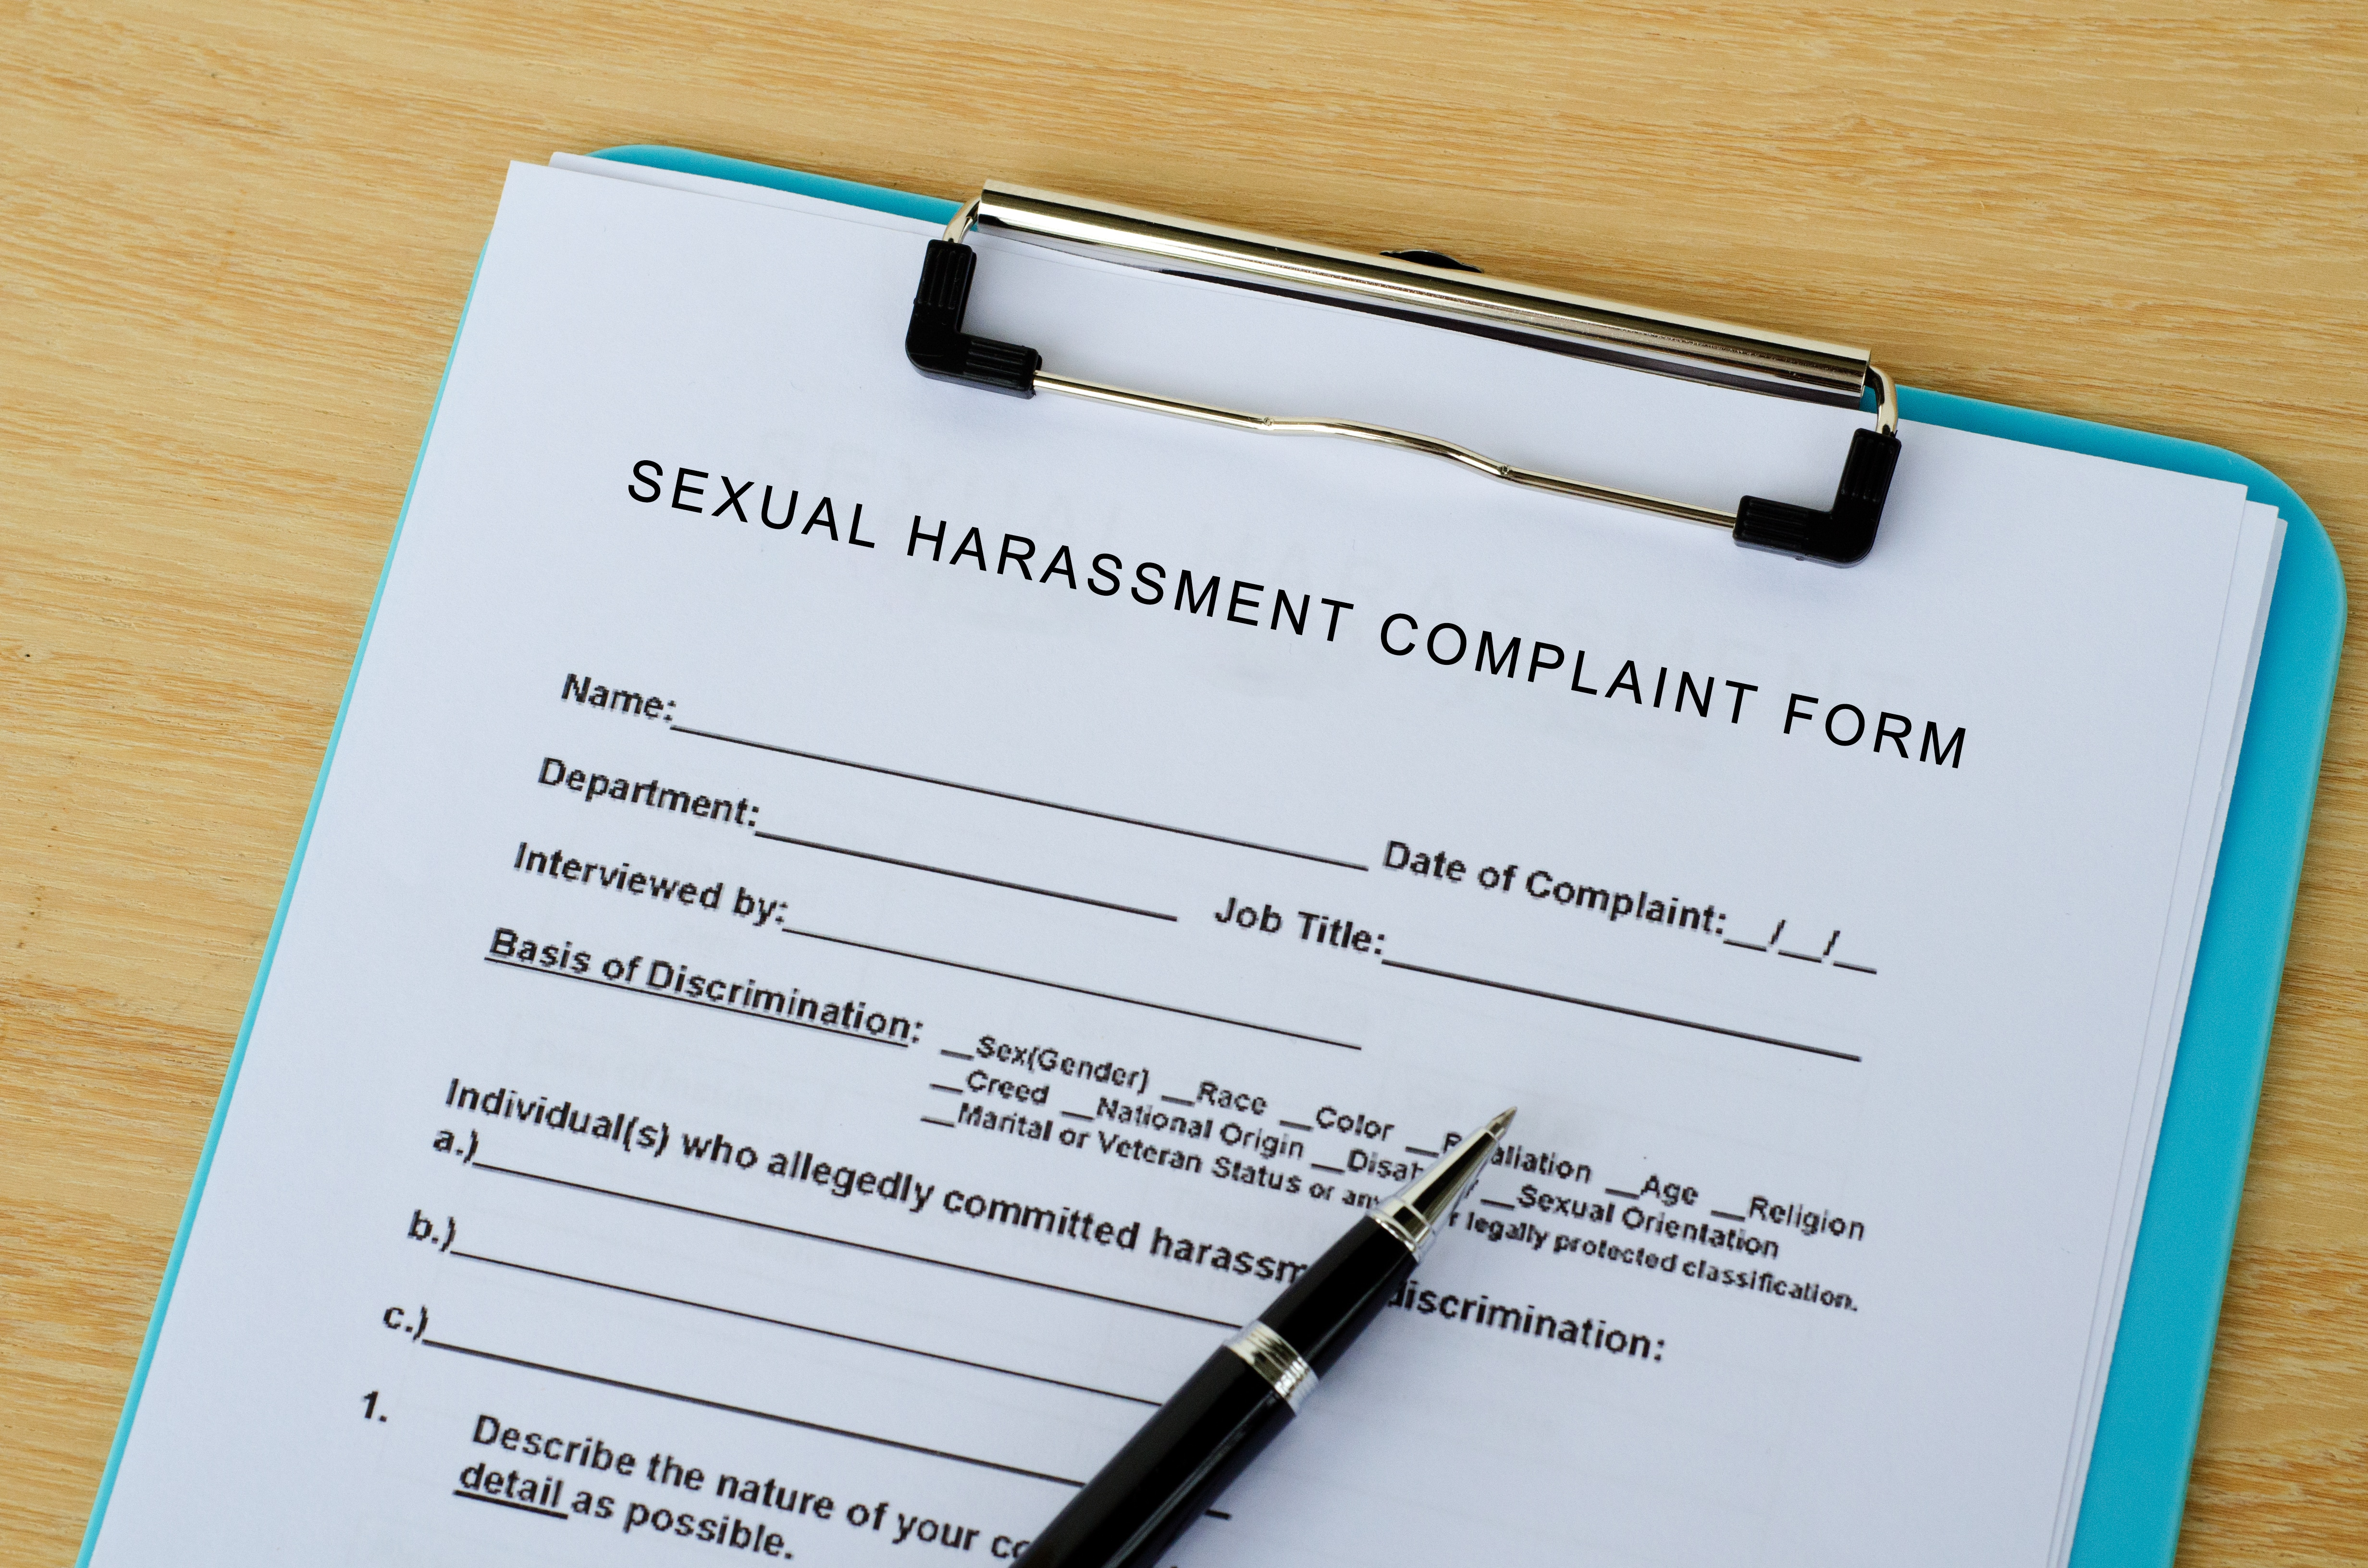 File a Sexual Harassment Complaint in Writing